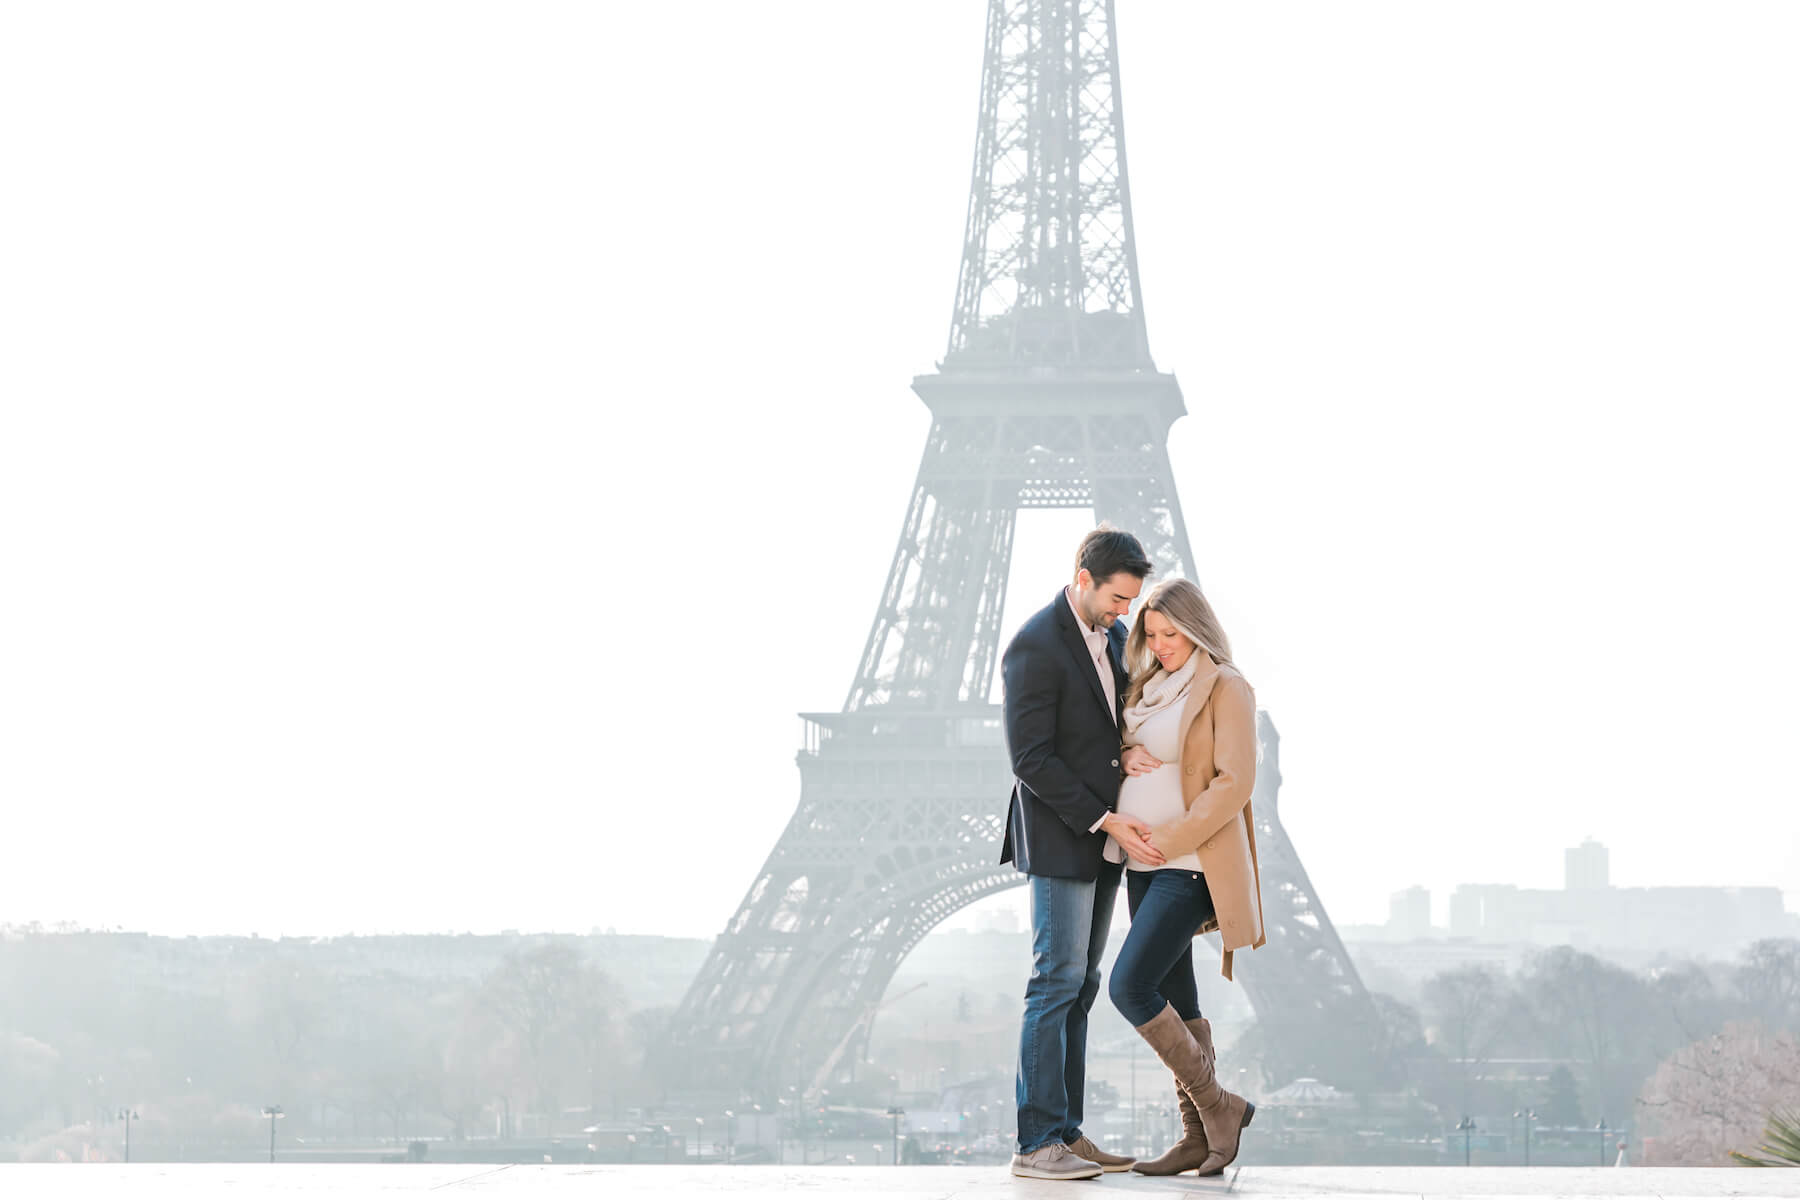 pregnant couple in looking at the woman's belly in front of the Eiffel Tower in Paris, France